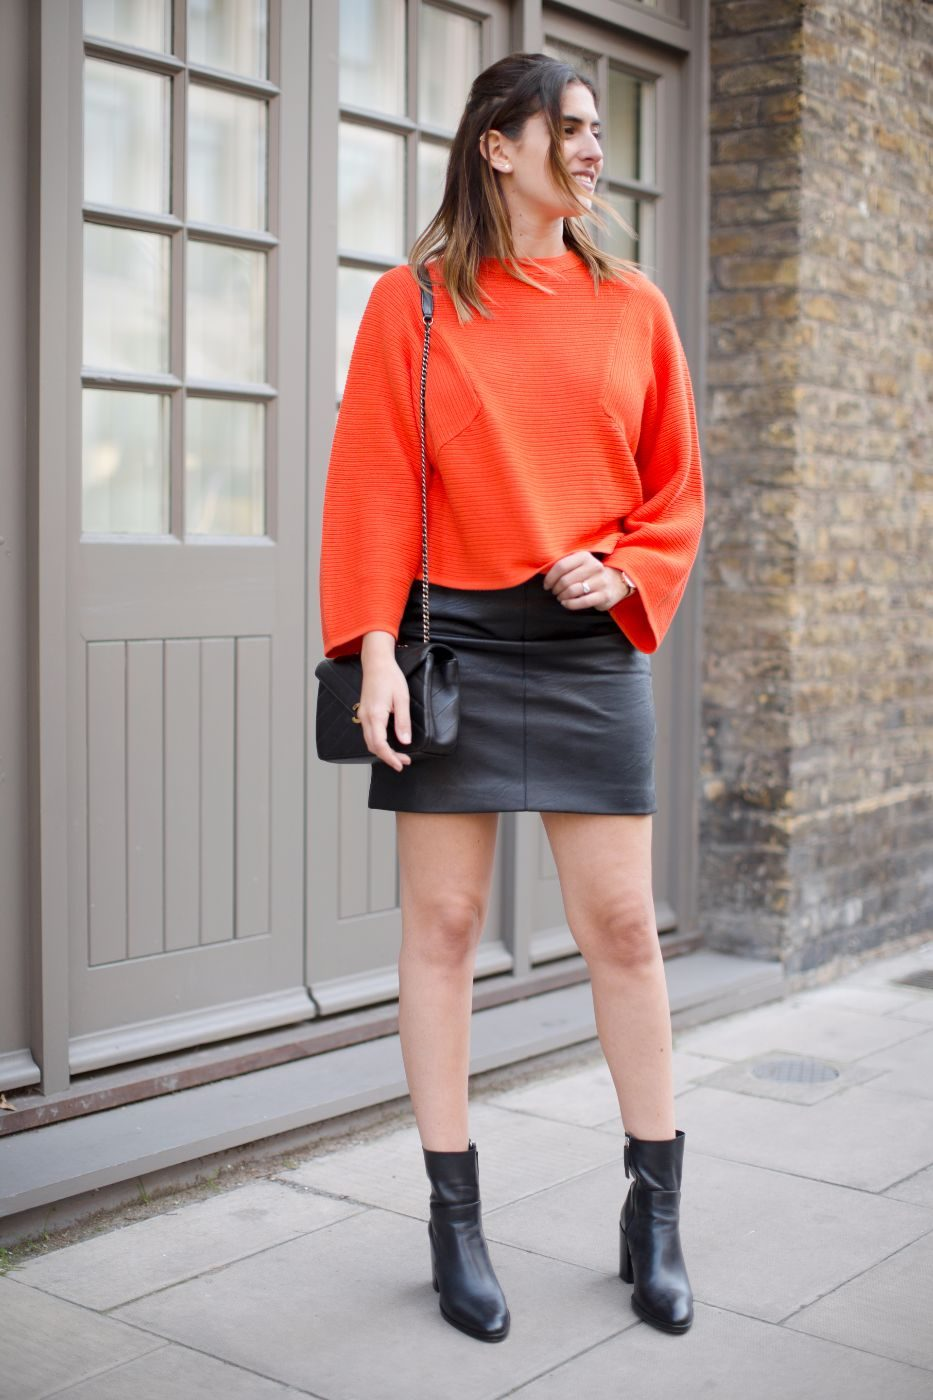 lily-pebbles-styling-leather-skirt-3-ways-video-fashion-march-2017-28